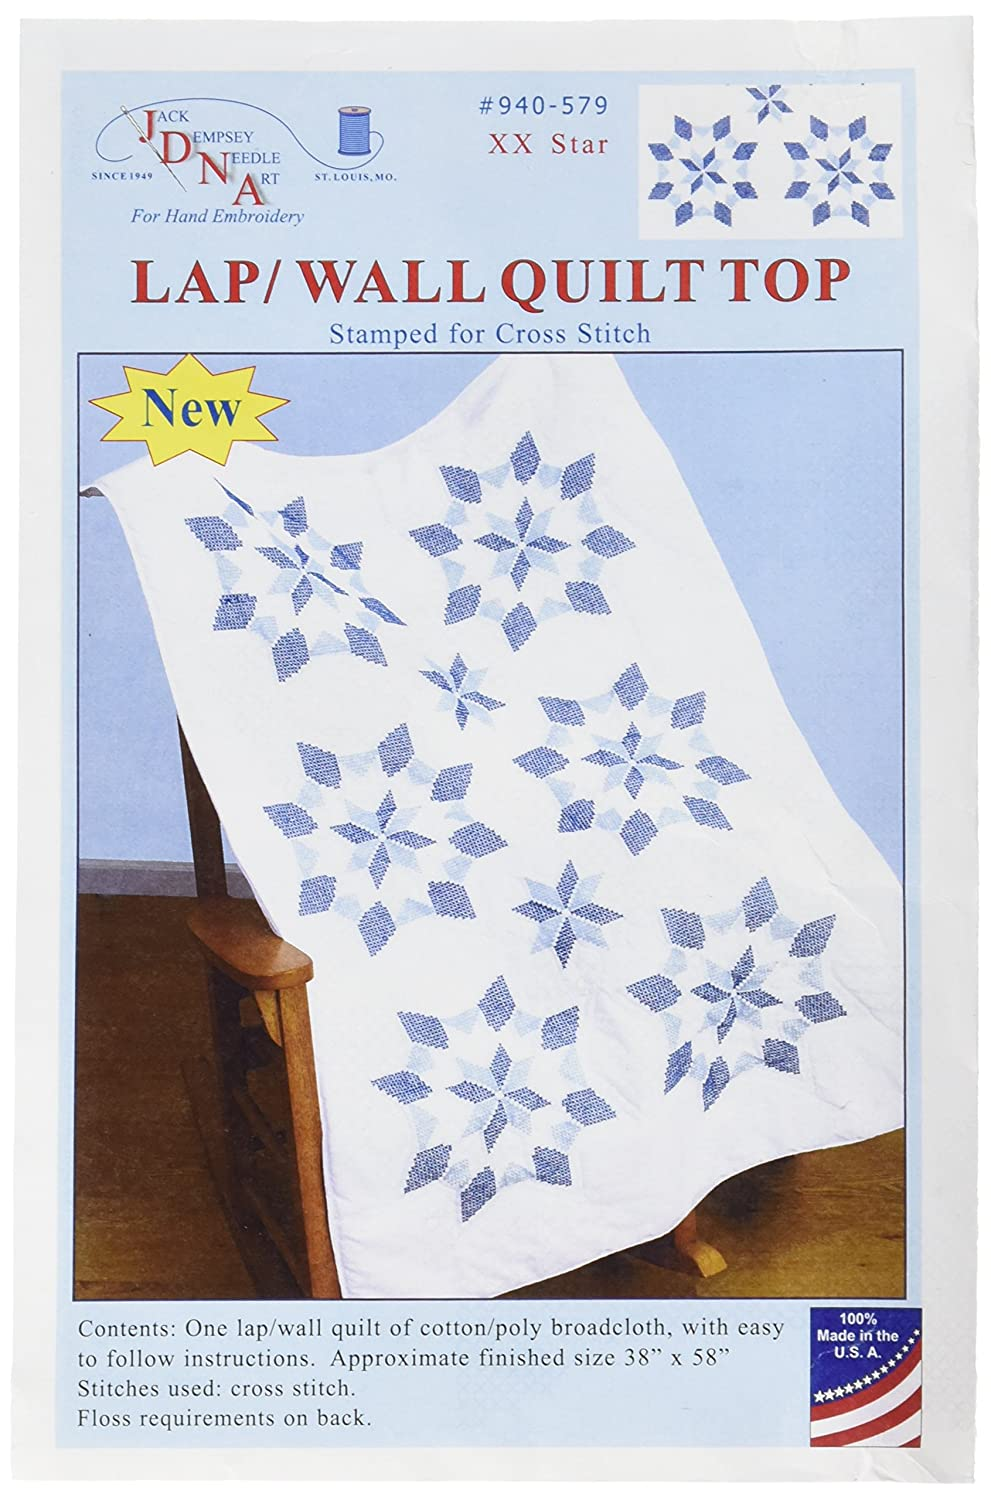 White 40 x 60 XX Star Jack Dempsey 940-579 Stamped Lap Quilt Top